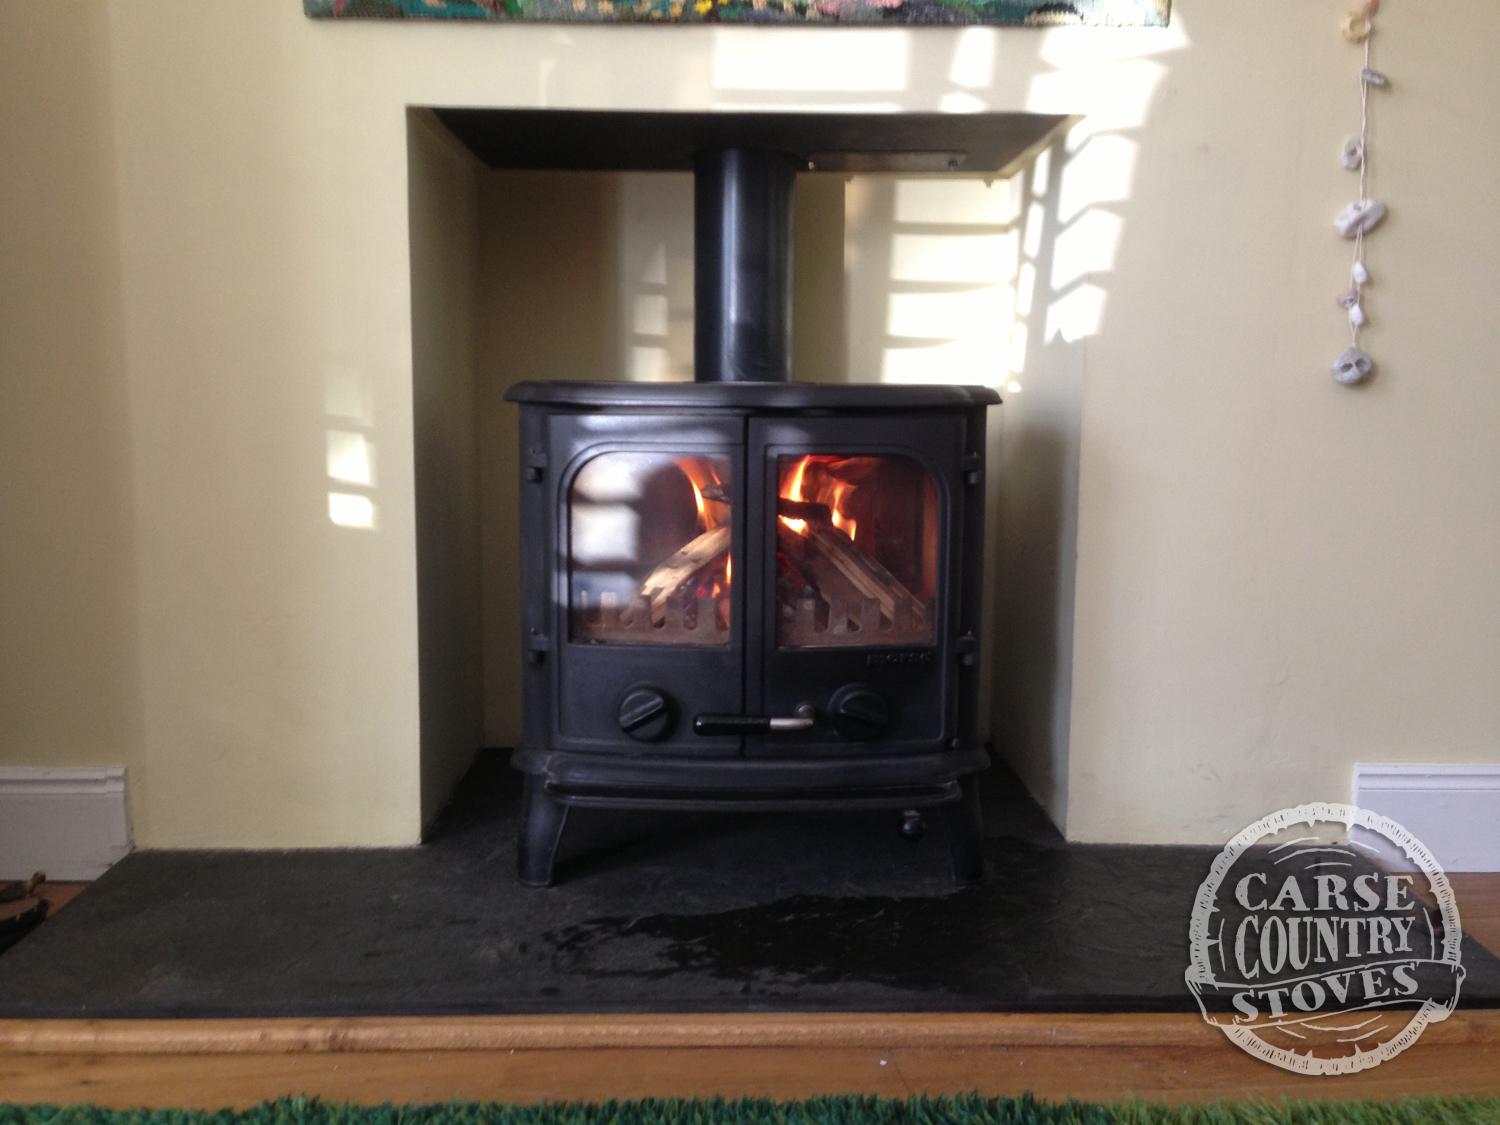 Carse Country Stoves IMG_2244.jpg